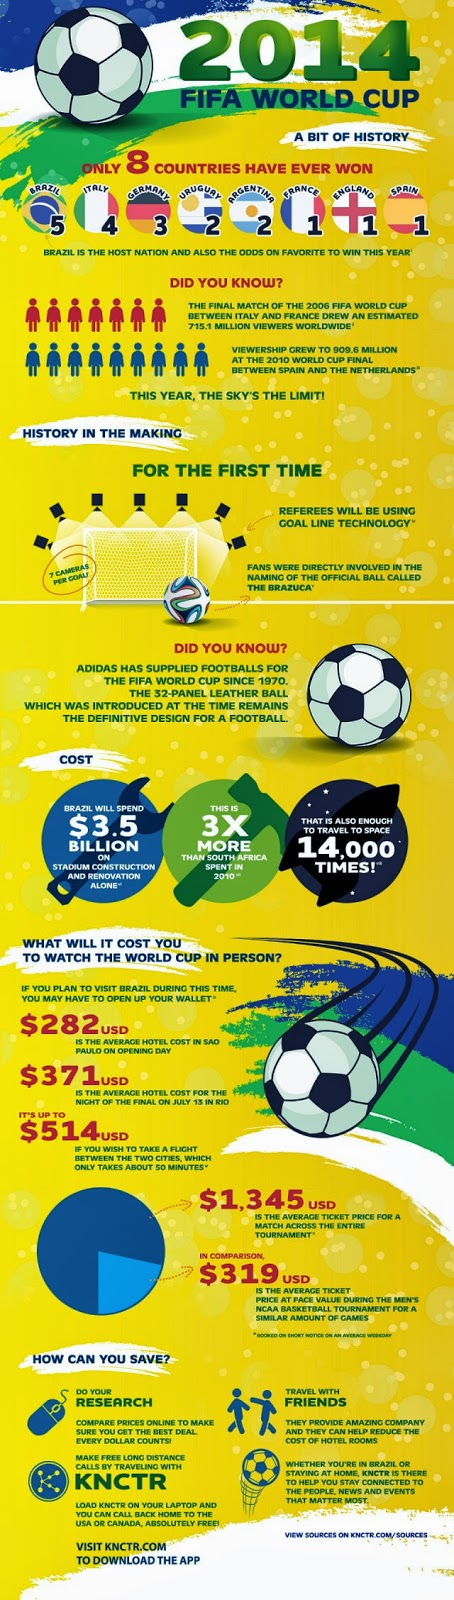 BRAZIL FIFA WORLD CUP 2014 - DID YOU KNOW?